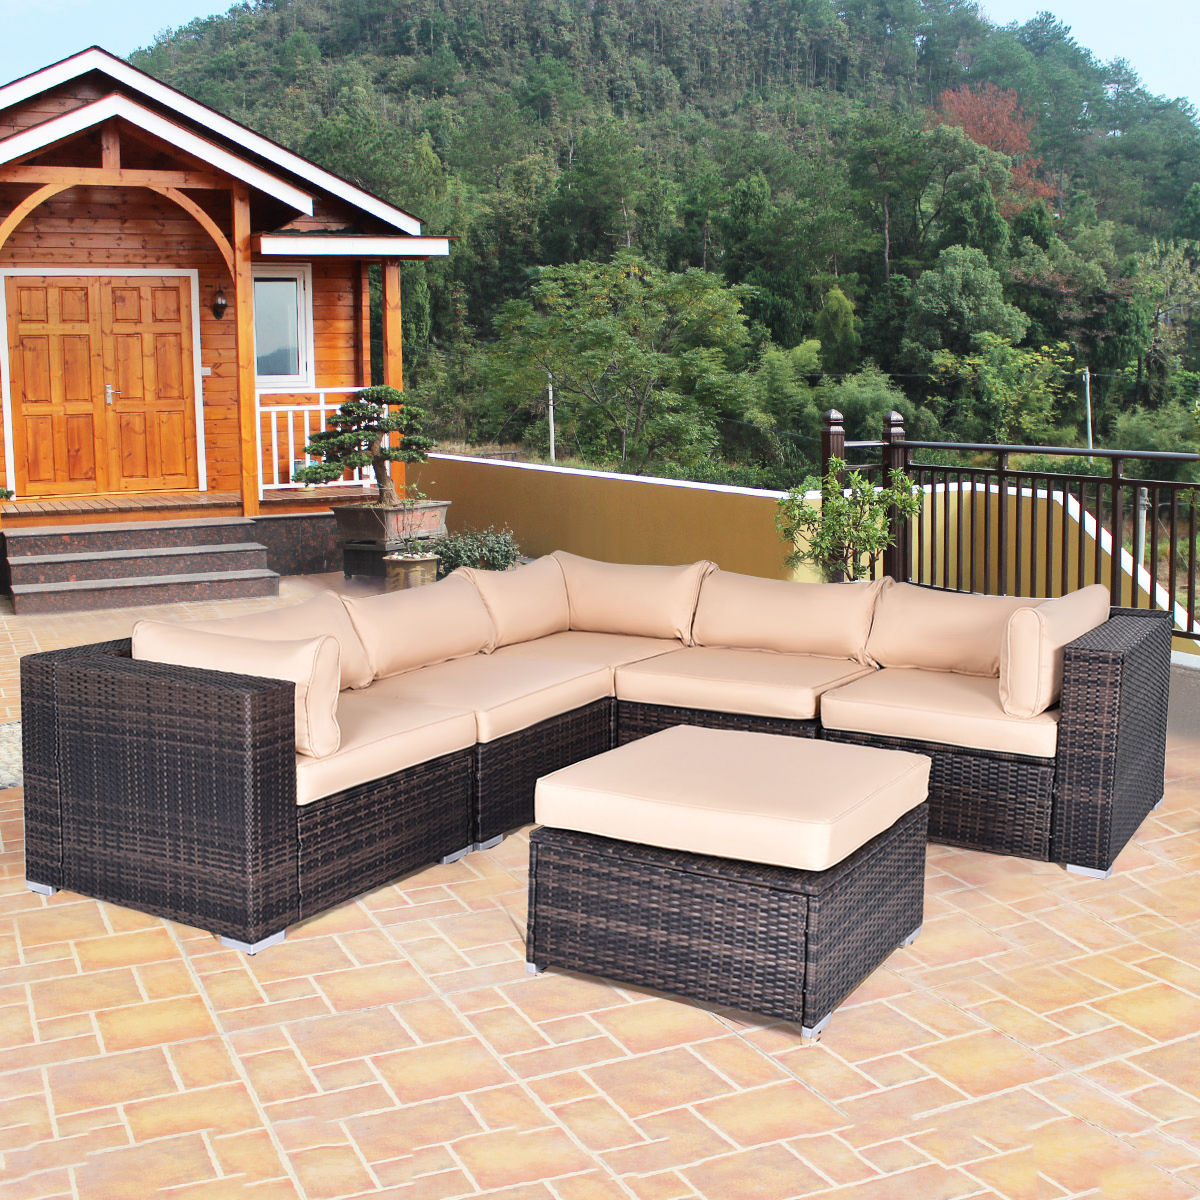 Costway 6 PCS Outdoor Rattan Wicker Furniture Set Sectional Sofa